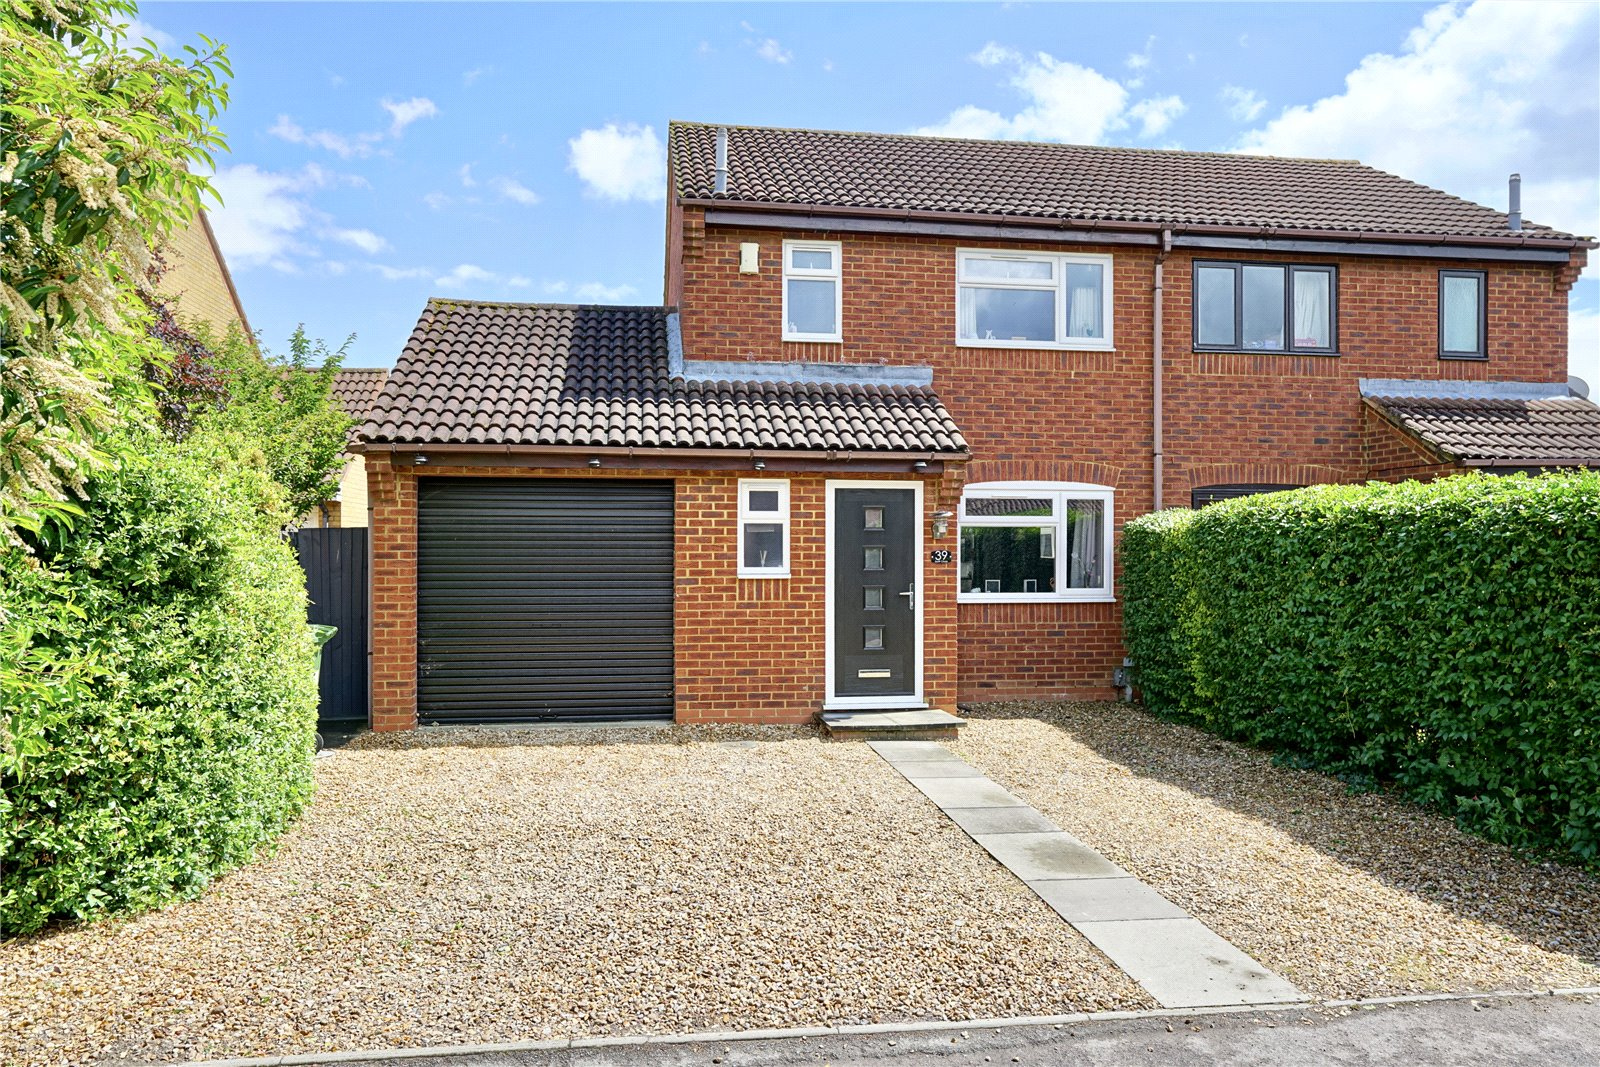 3 bed house for sale in Swift Close, St. Neots - Property Image 1